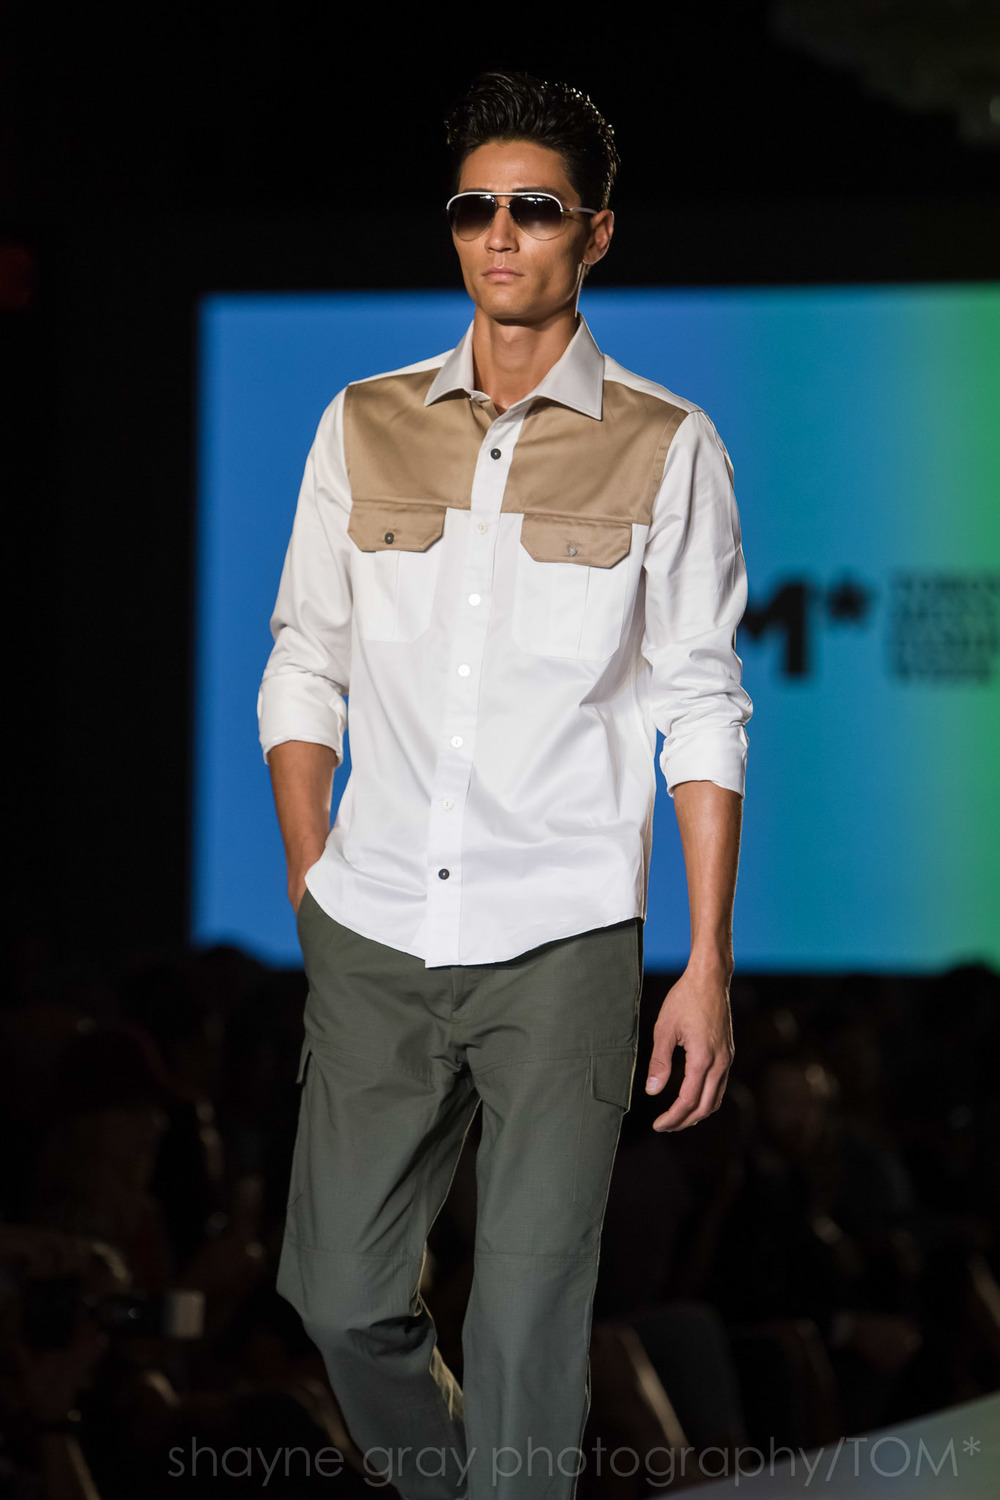 Shayne-Gray-Toronto-men's-fashion_week-TOM-christopher-bates-7217.jpg